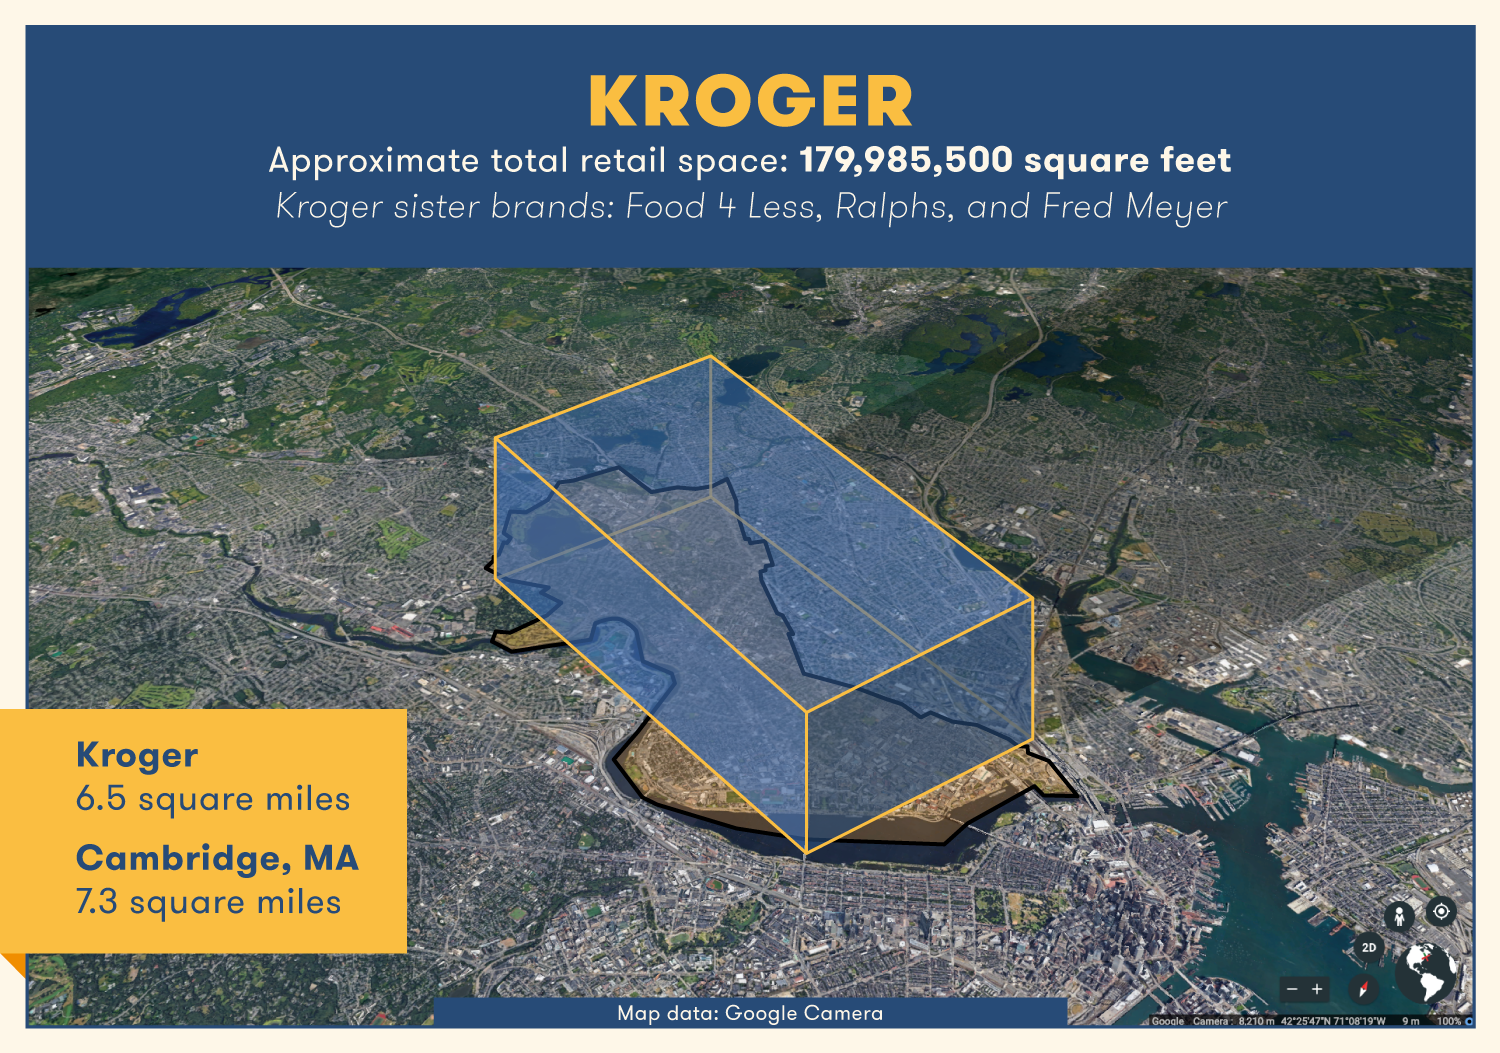 A giant Kroger store would cover an area of 6.5 square miles — slightly smaller than the size of Cambridge, MA.